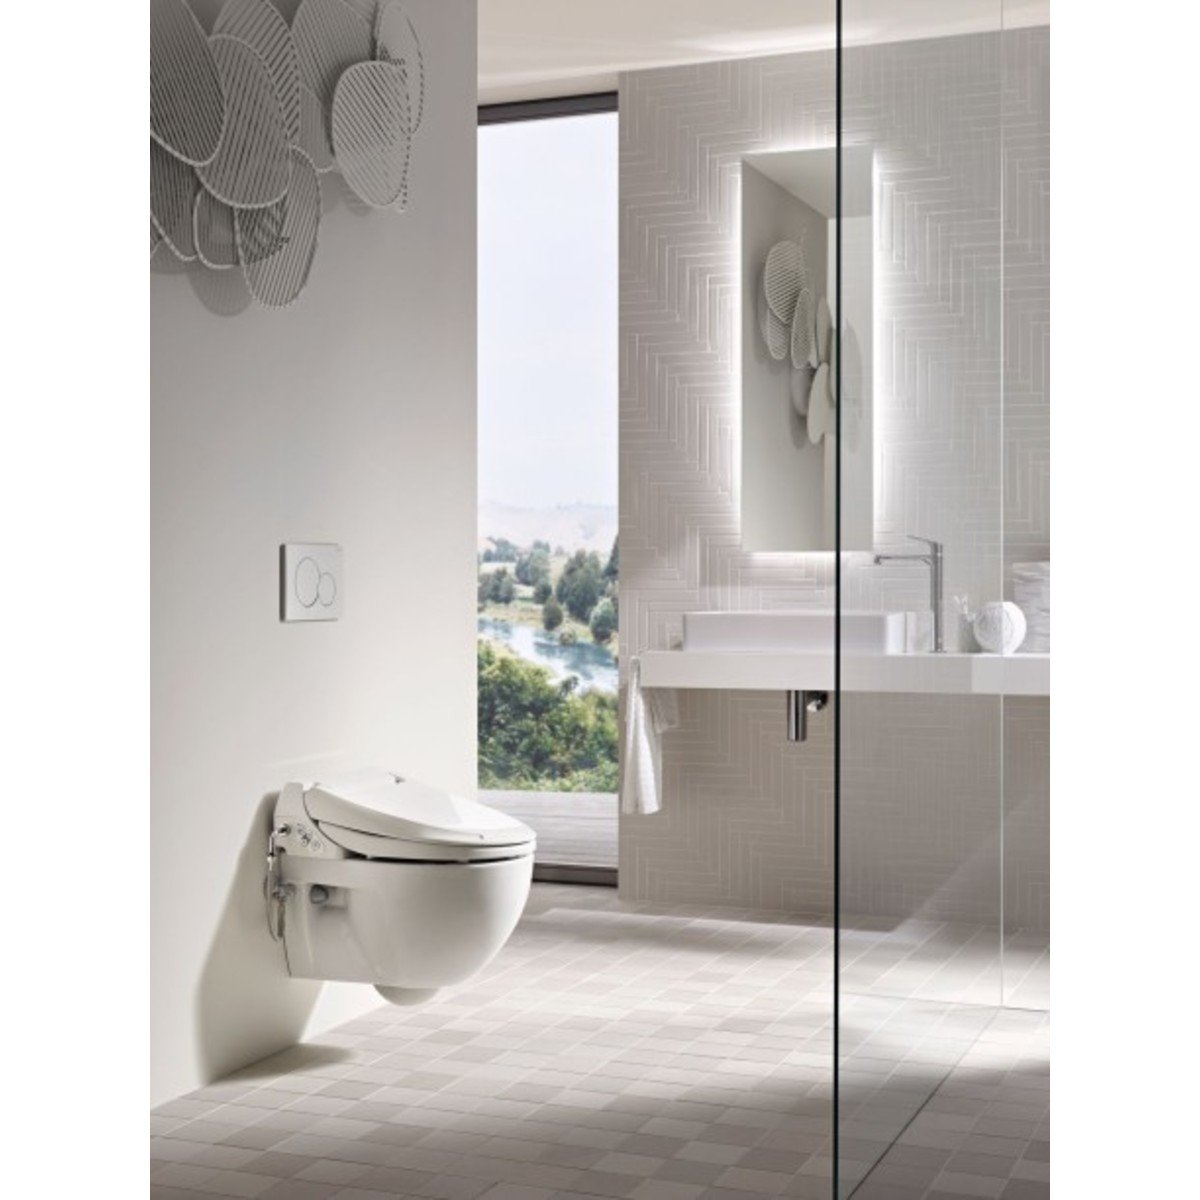 geberit aquaclean 4000 abattant wc japonais avec cuvette murale blanc 146135111. Black Bedroom Furniture Sets. Home Design Ideas